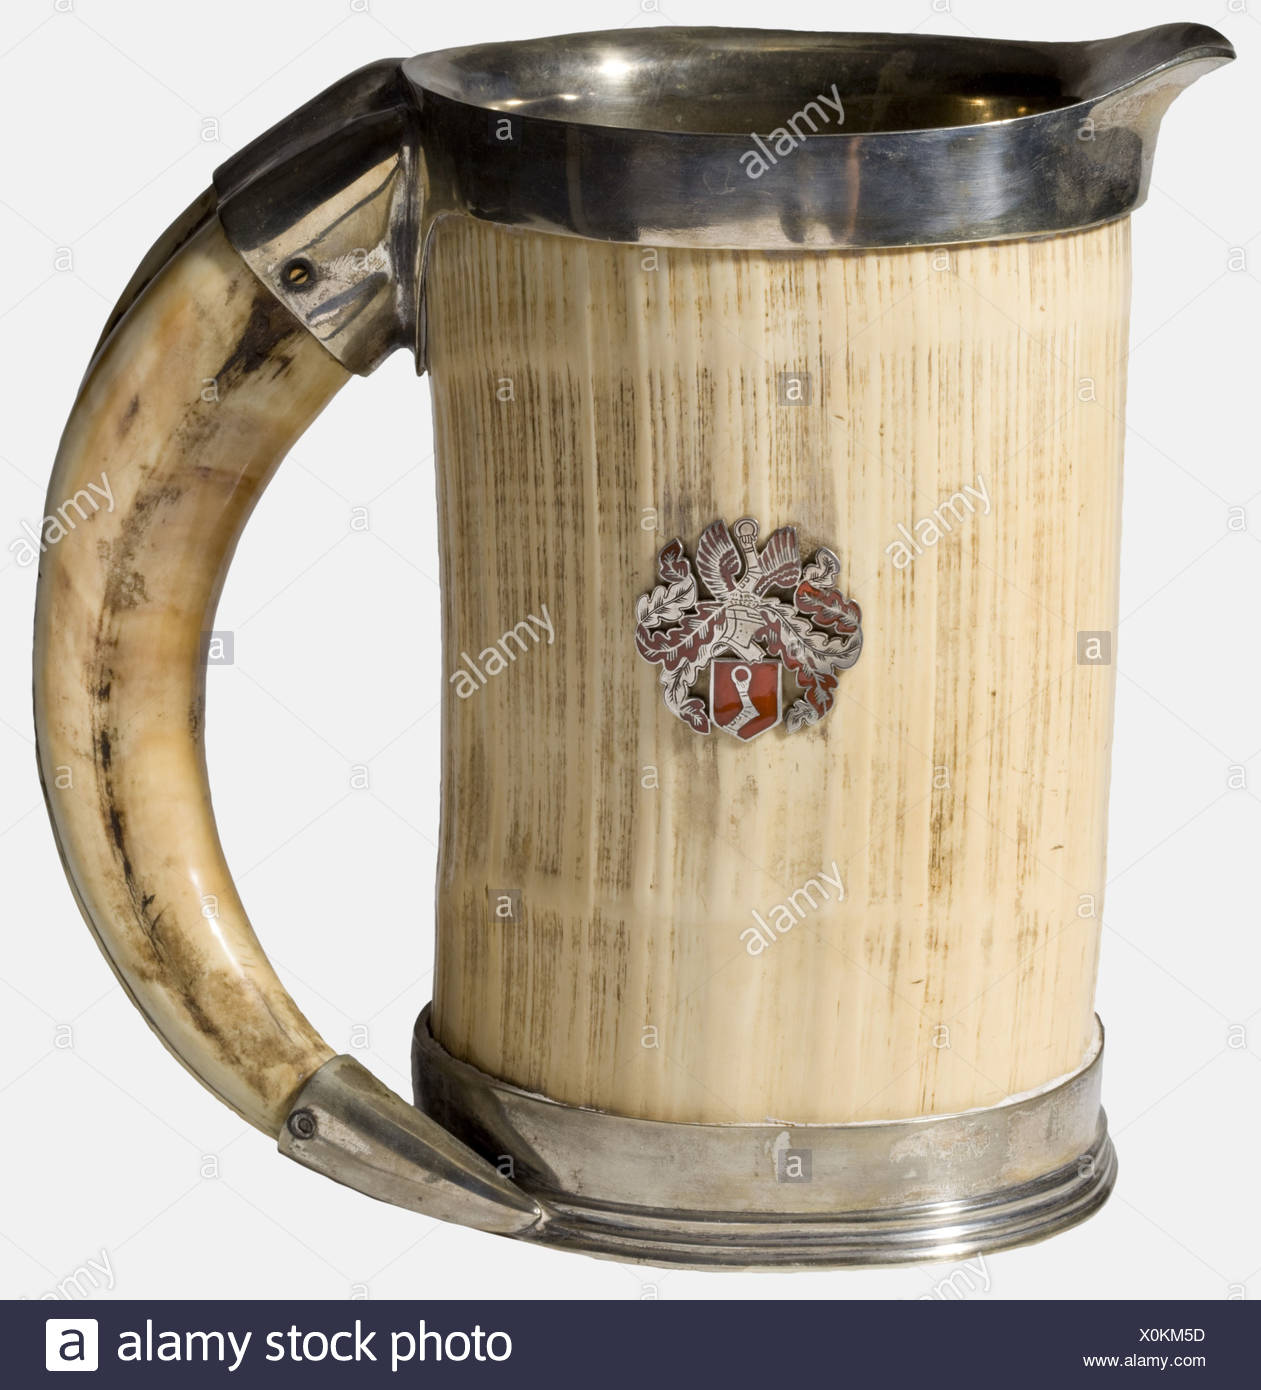 Hermann Göring, an ivory hunting pitcher Ivory, trimmed with silver-plated non-ferrous metal, the interior lined with the same material. The grip is a heavy boar's tusk. Göring's coat of arms in silver highlighted with red enamel is mounted on one side (one expansion crack). Height 18.7 cm. Magnificent pitcher. historic, historical, 1930s, 1930s, 20th century, NS, National Socialism, Nazism, Third Reich, German Reich, Germany, German, National Socialist, Nazi, Nazi period, fascism, fine arts, art, art object, art objects, artful, precious, collectible, collecto, Additional-Rights-Clearances-NA - Stock Image